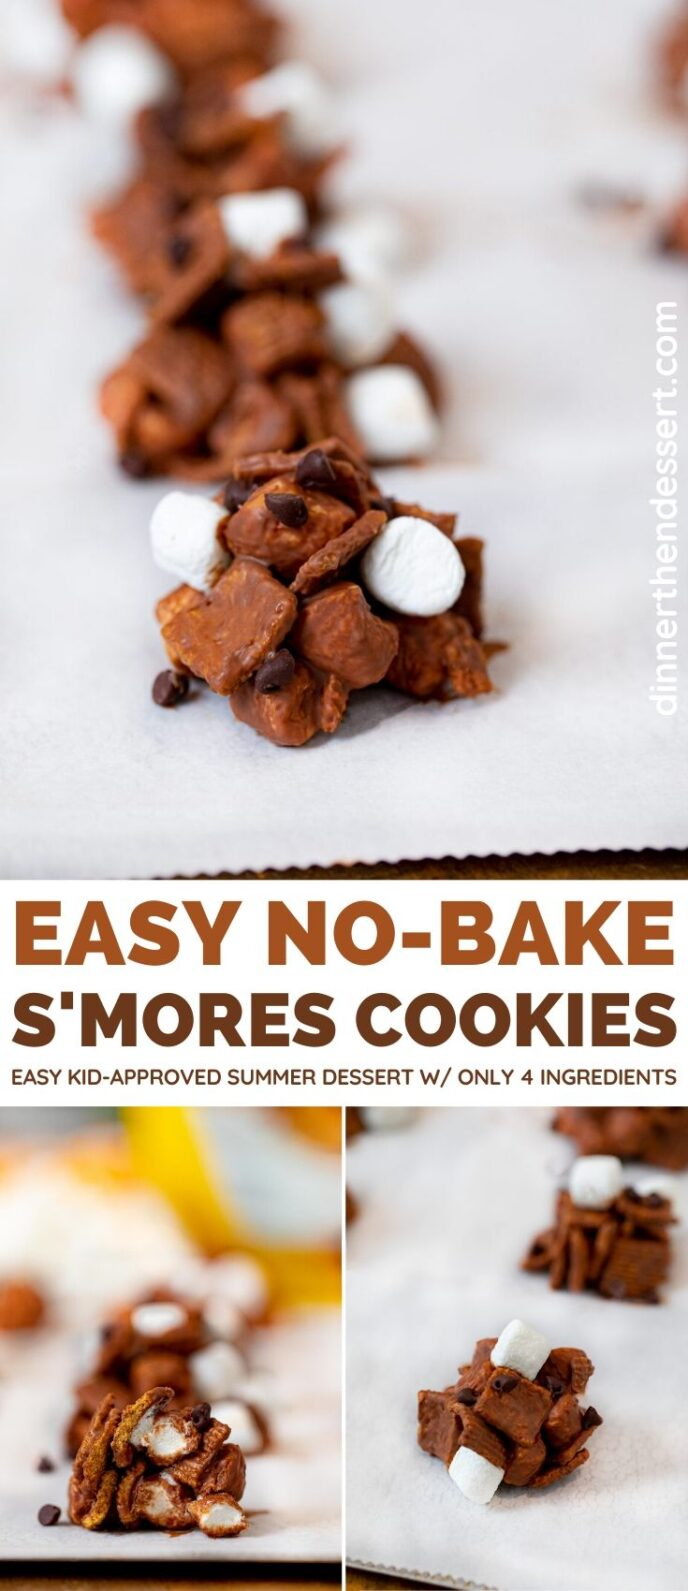 No-Bake S'Mores Cookies collage